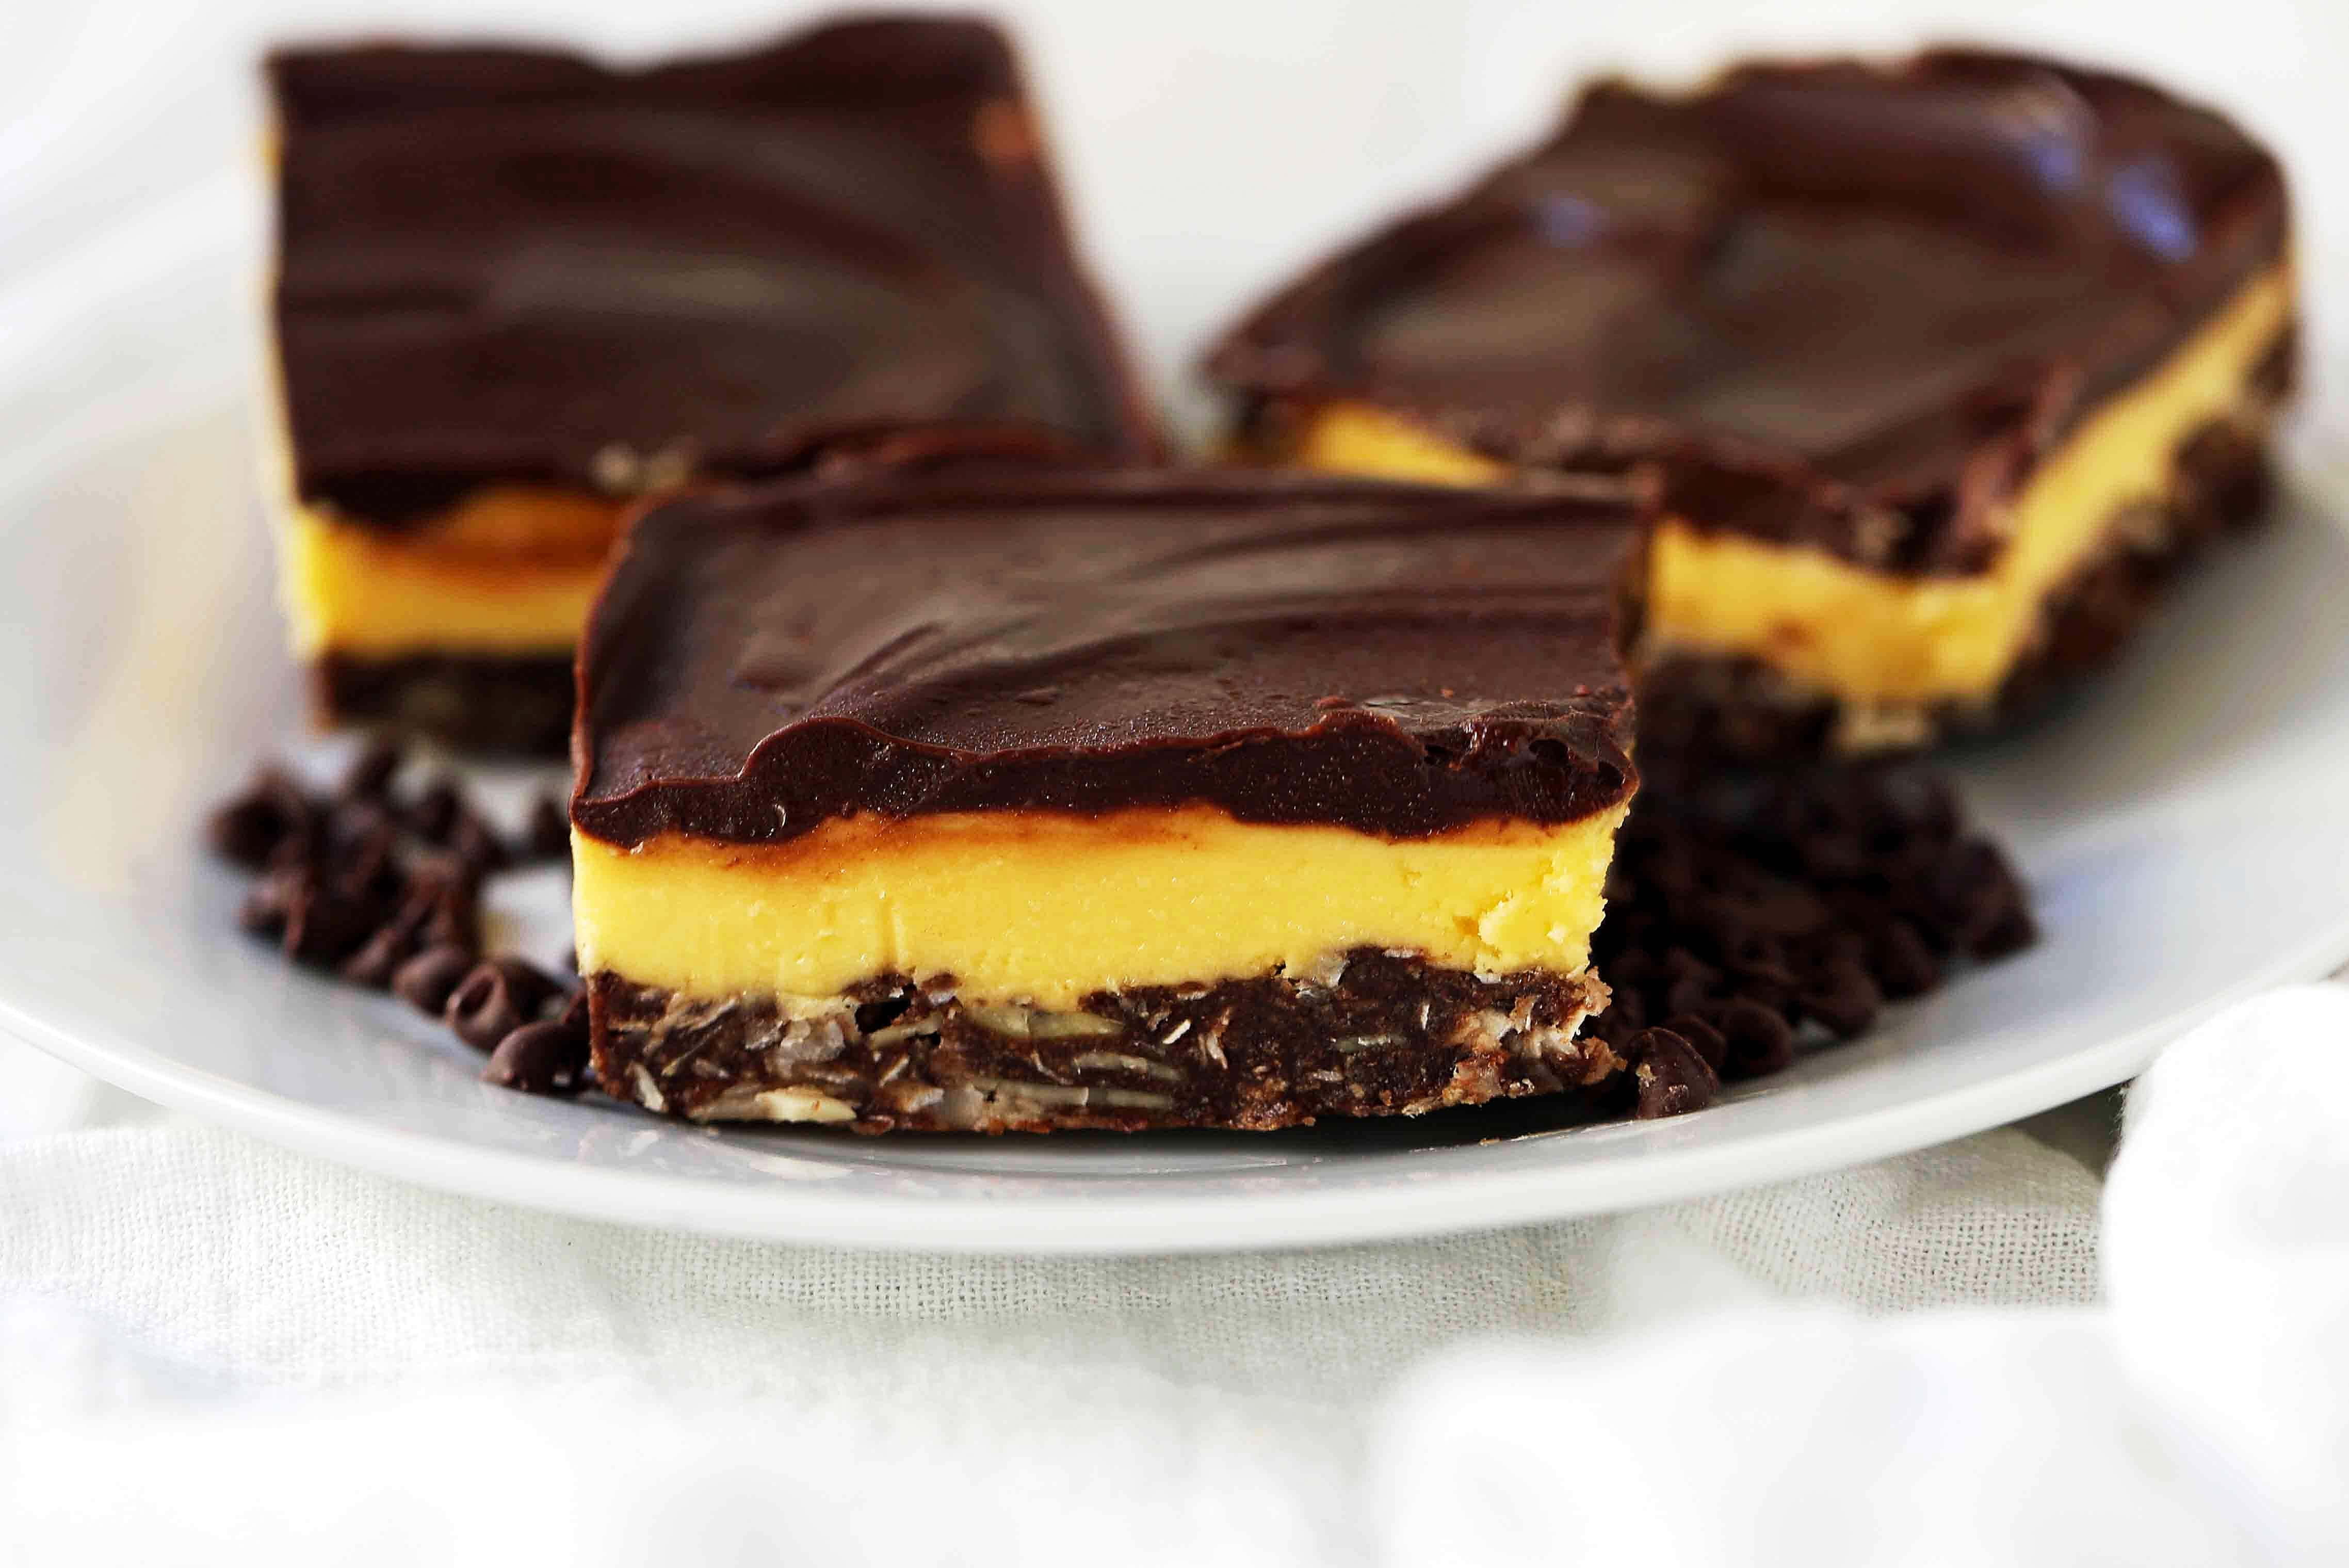 Nanaimo Bars are a famous Canadian dessert bar. A triple layer bar with a crust made with graham crackers, coconut, chocolate, and almonds, and a filling made with custard and cream, and covered in a chocolate ganache. www.modernhoney.com #nanaimobars #nanaimo #triplelayerbars #dessertbar